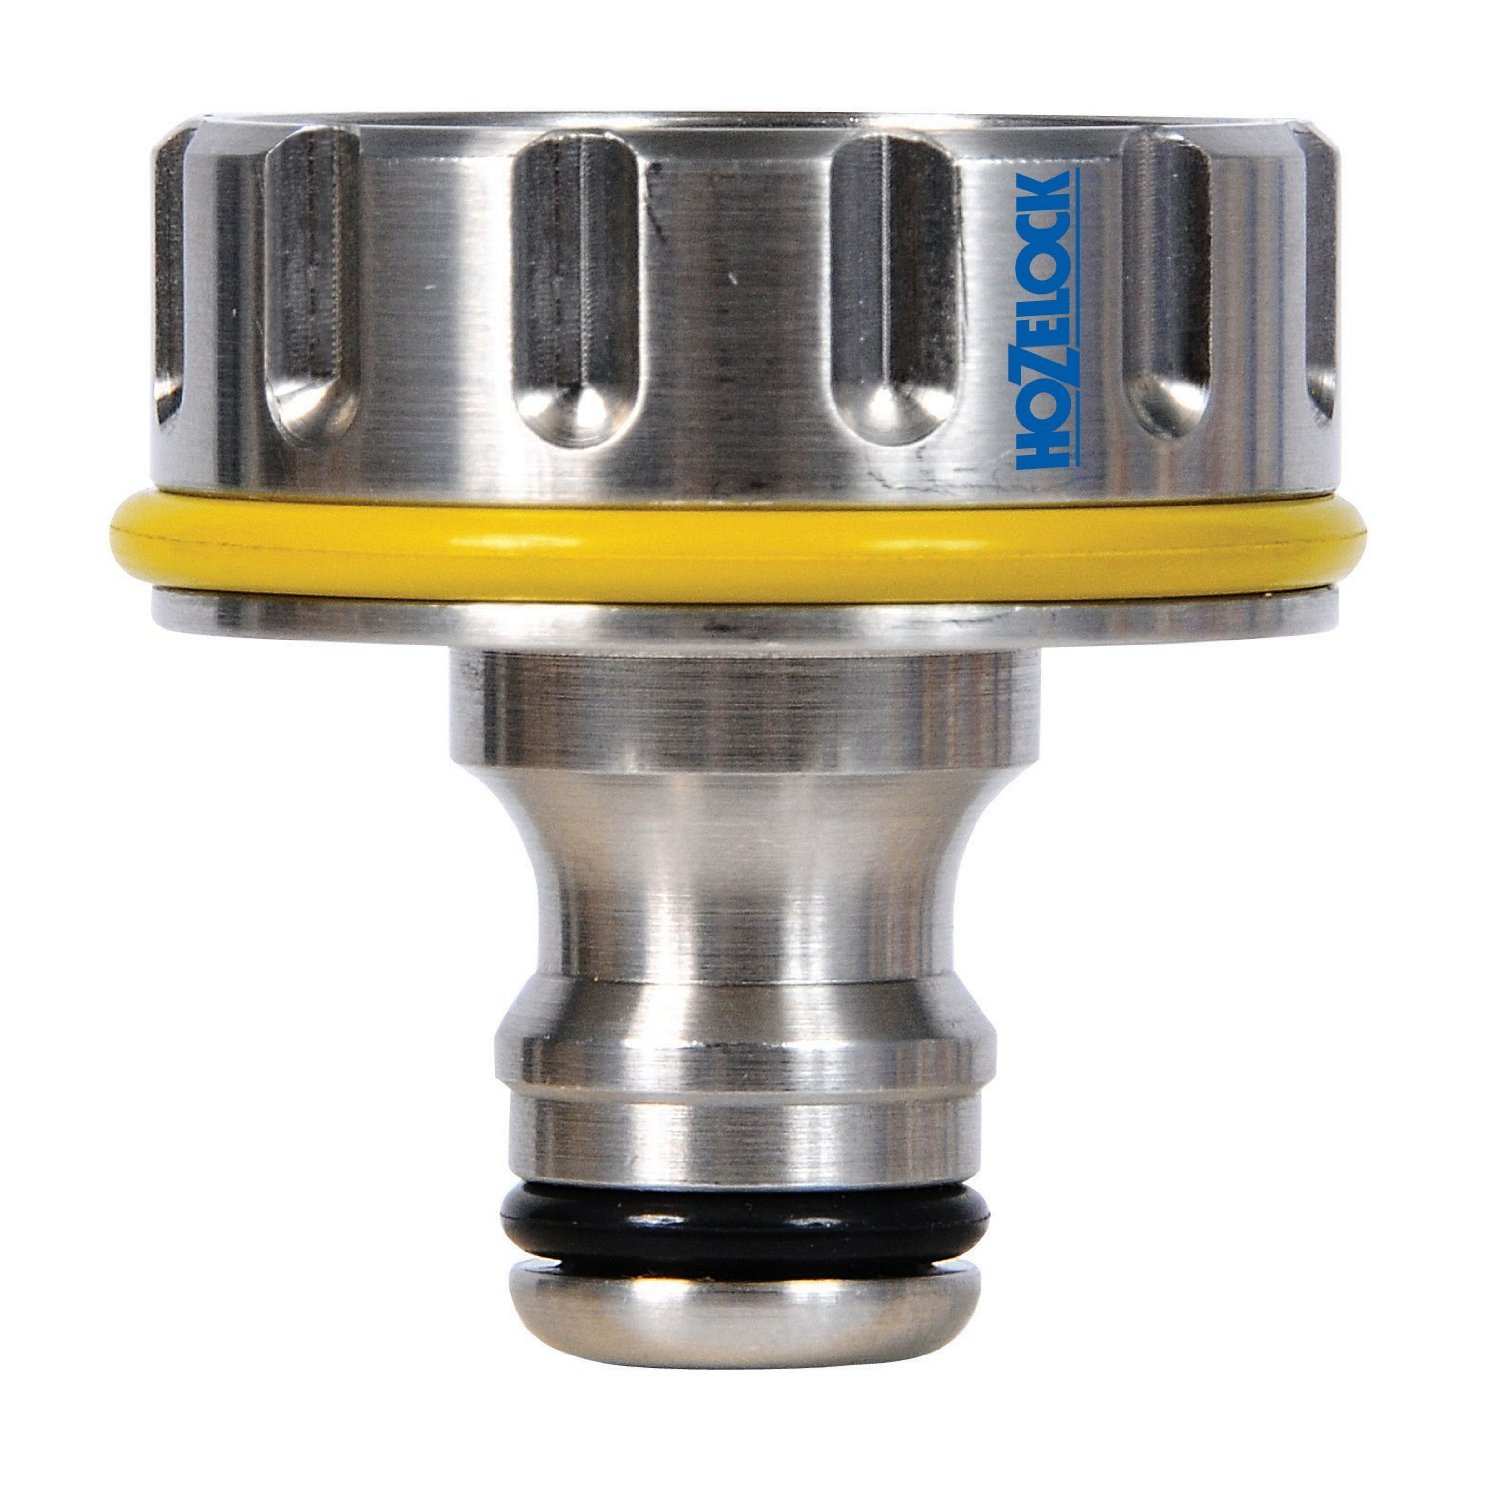 Hozelock 1 Inch BSP (33.3 mm) Pro Metal Outdoor Tap (for Larger Taps More Than 33.3 mm Diameter)